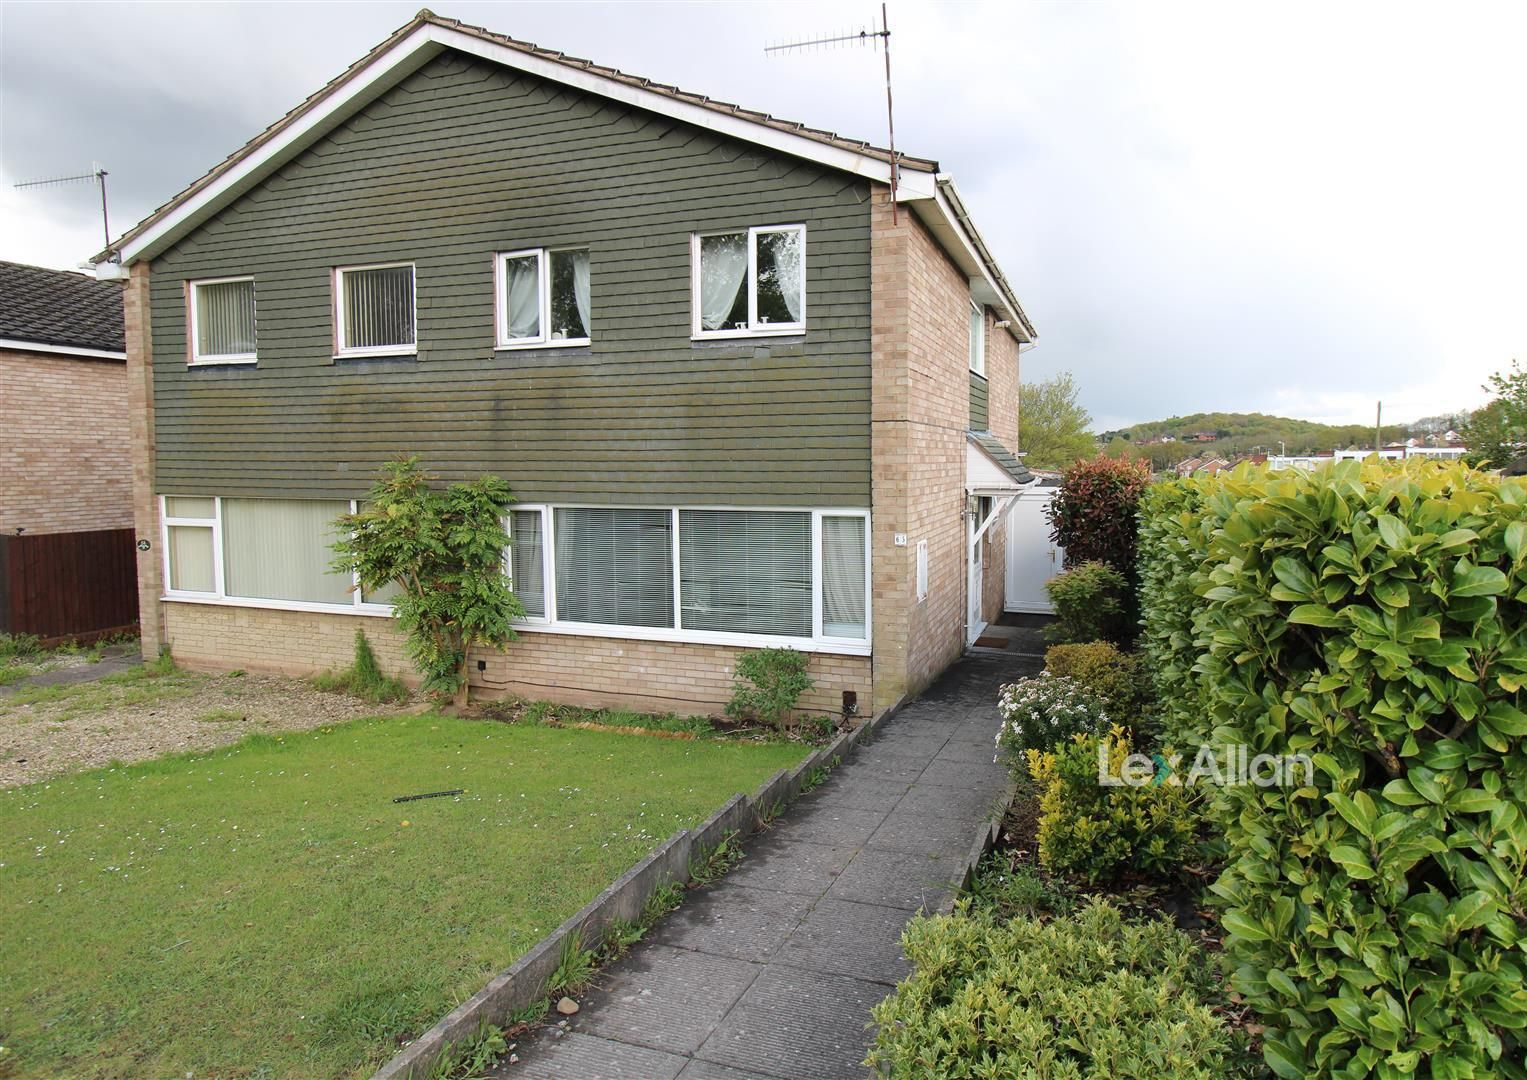 3 bed semi-detached for sale in Wordsley, DY8